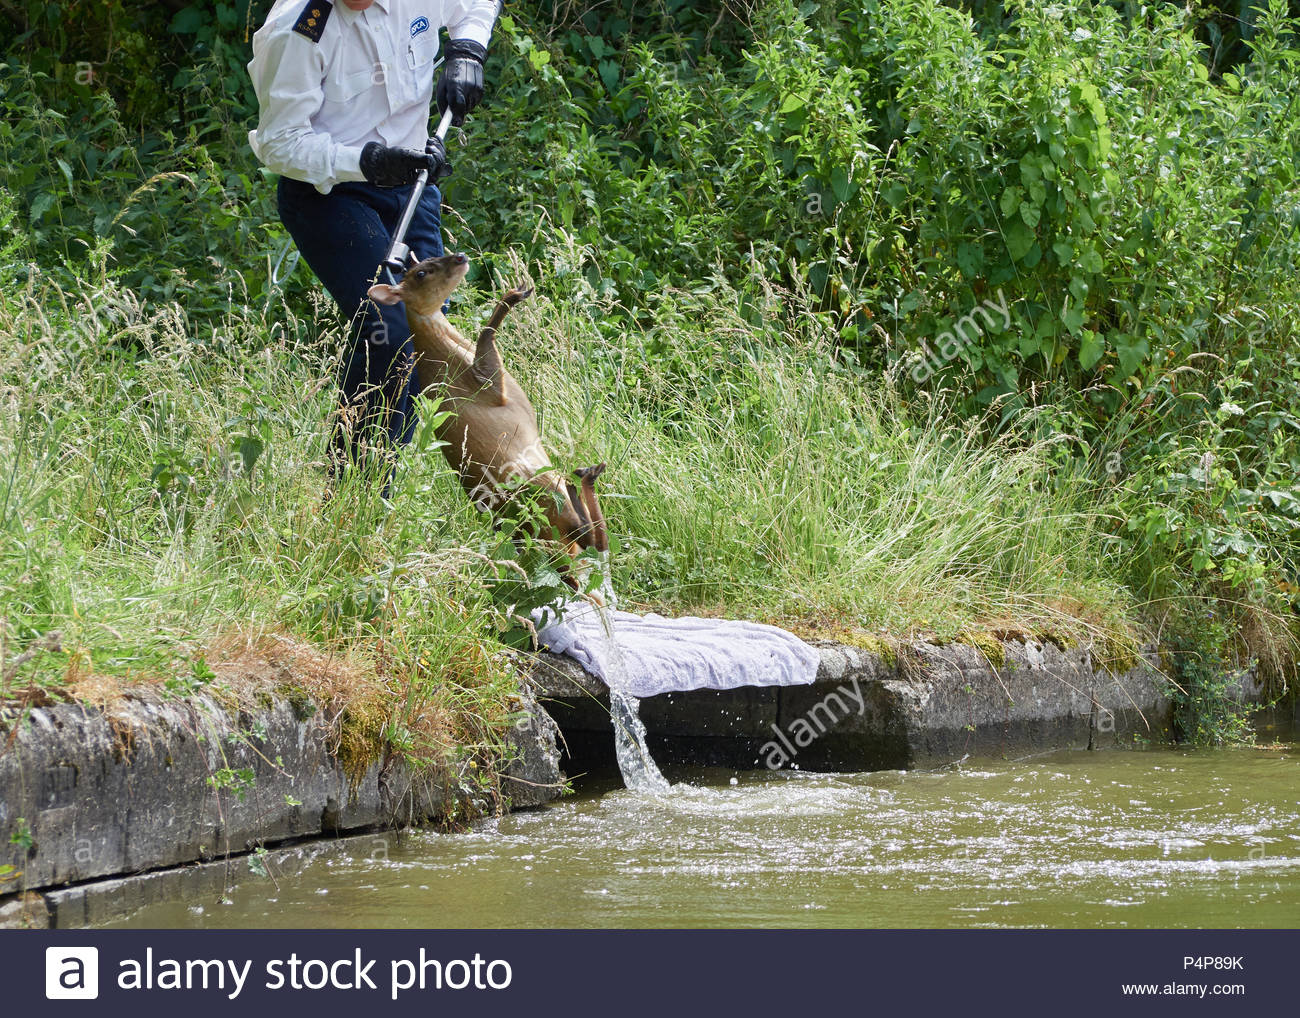 RSPCA officer Jamie lifts the Muntjac deer back on to the safety of dry land. The deer was successfully released back in to the woodland. Credit: Mike Caffrey/Alamy Live News - Stock Image